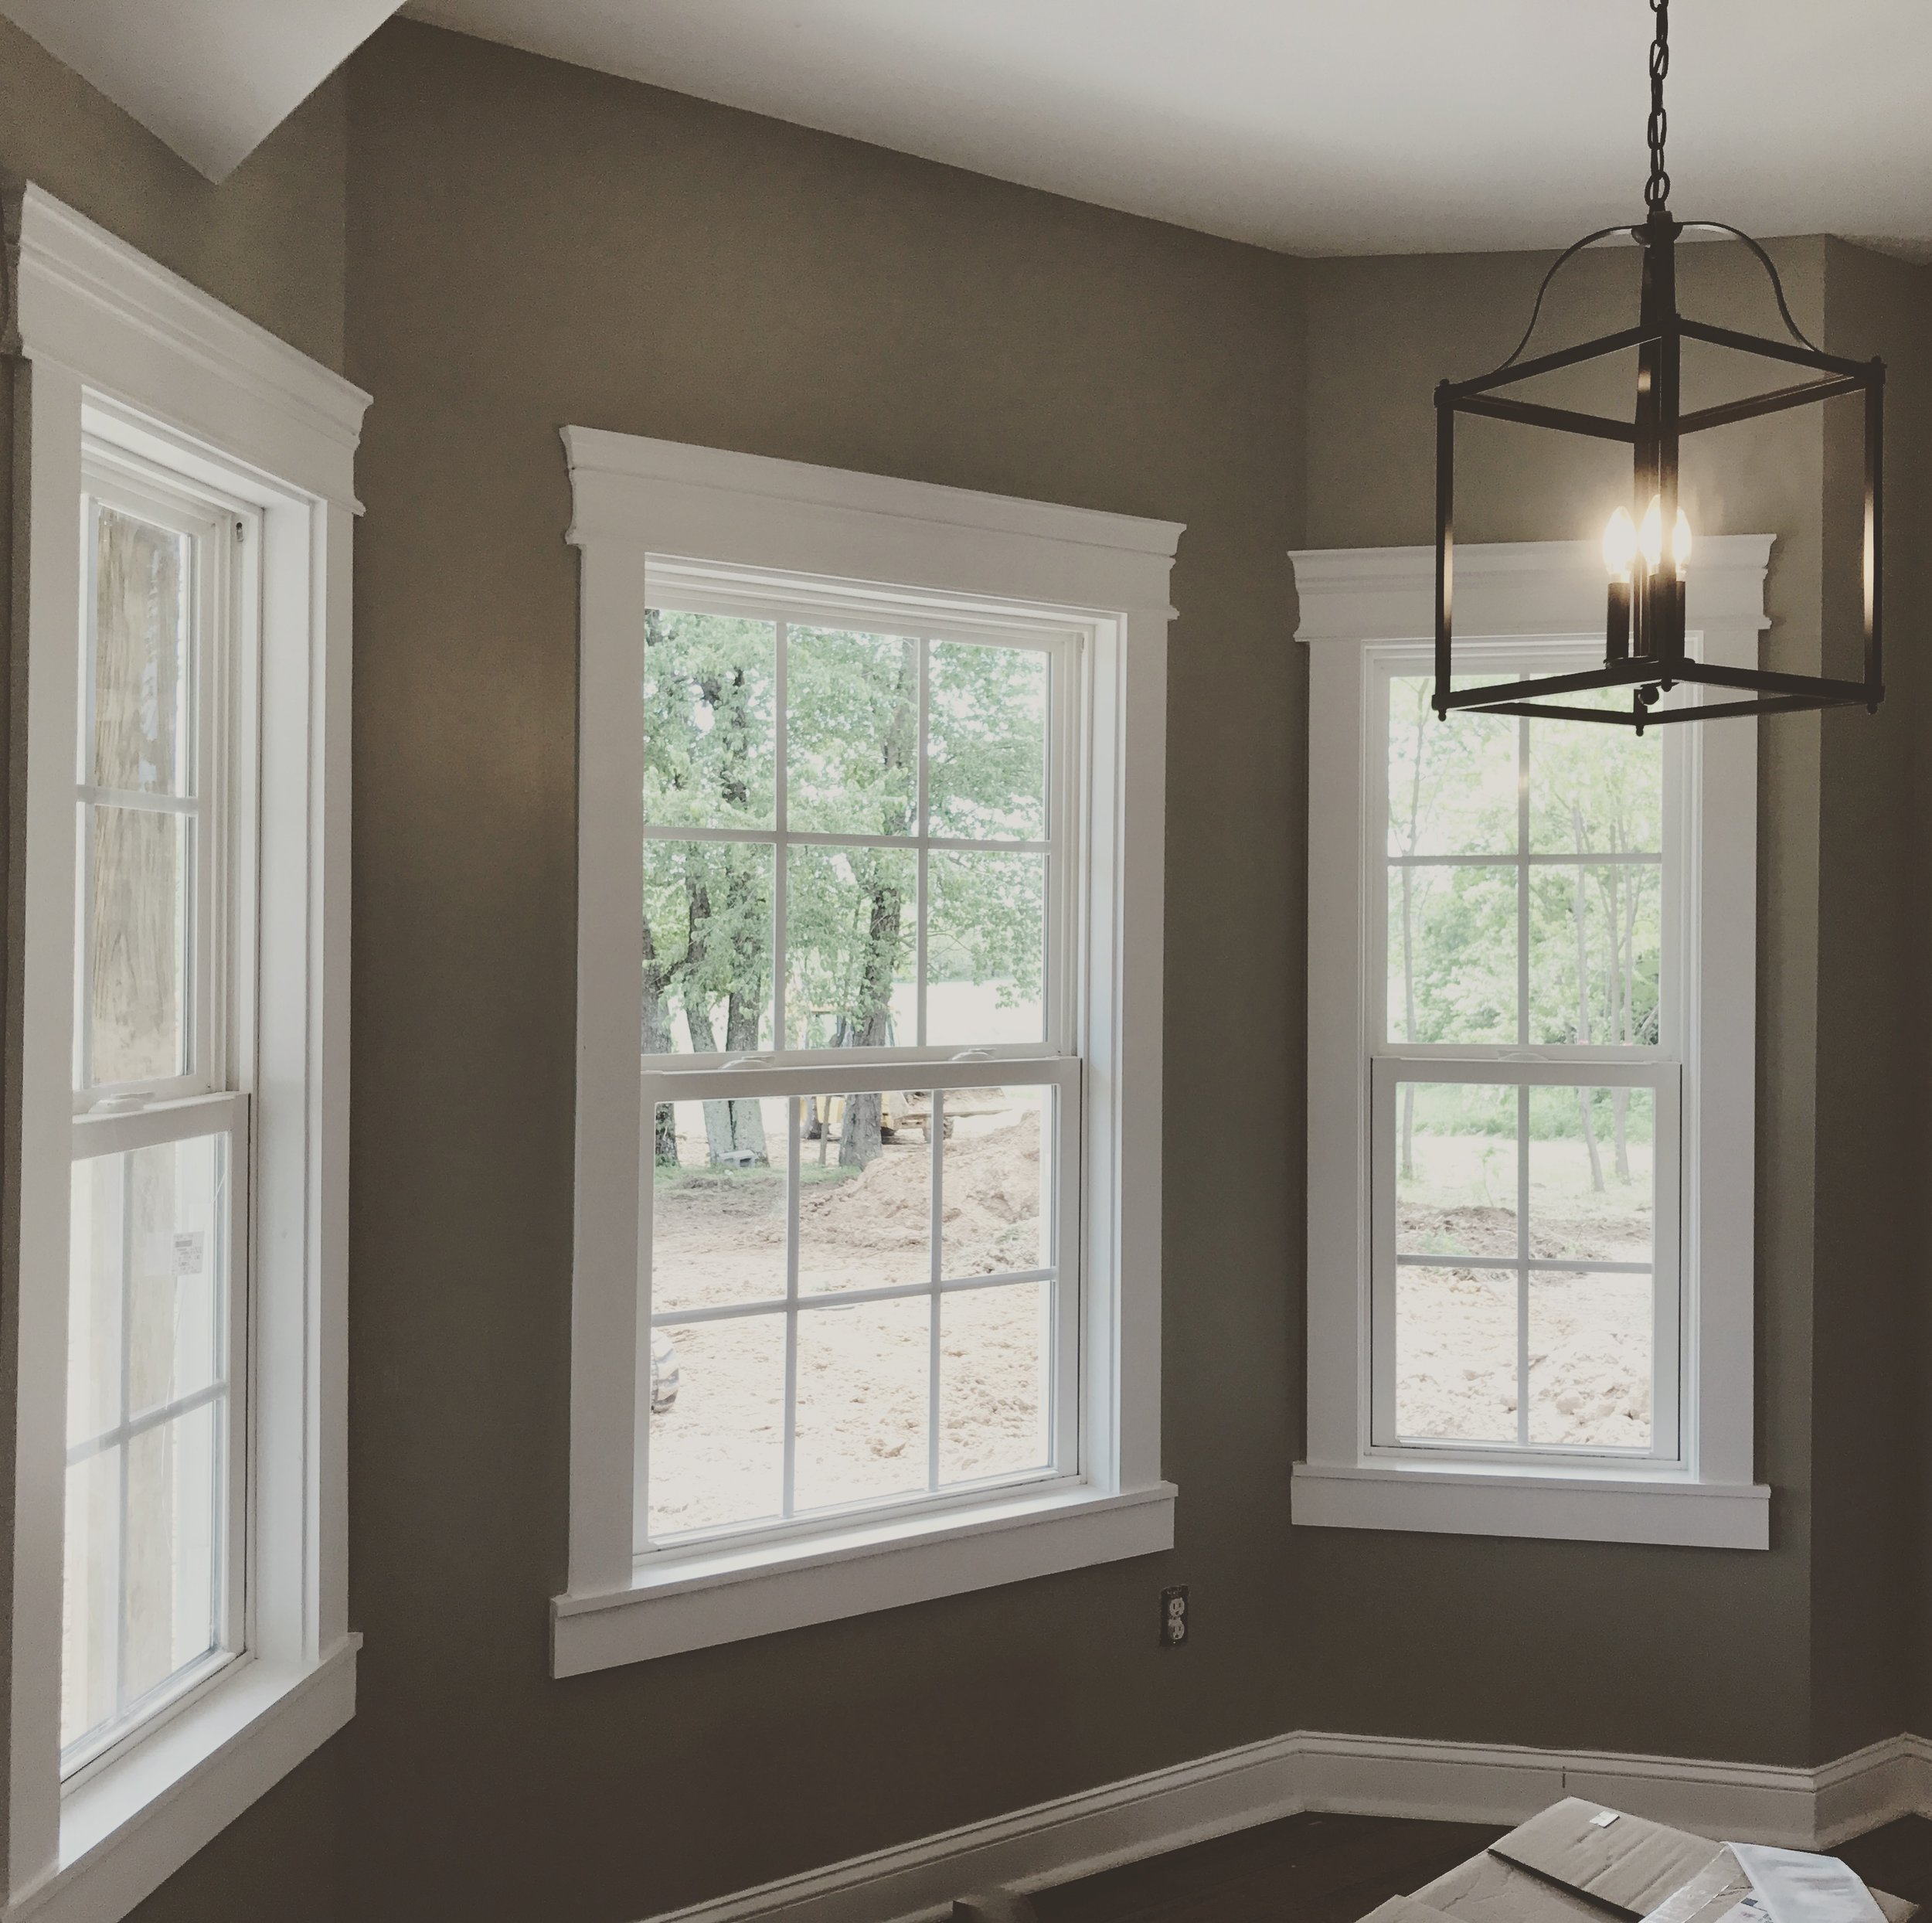 Beautiful farmhouse style trim work sets off the view of the countryside.